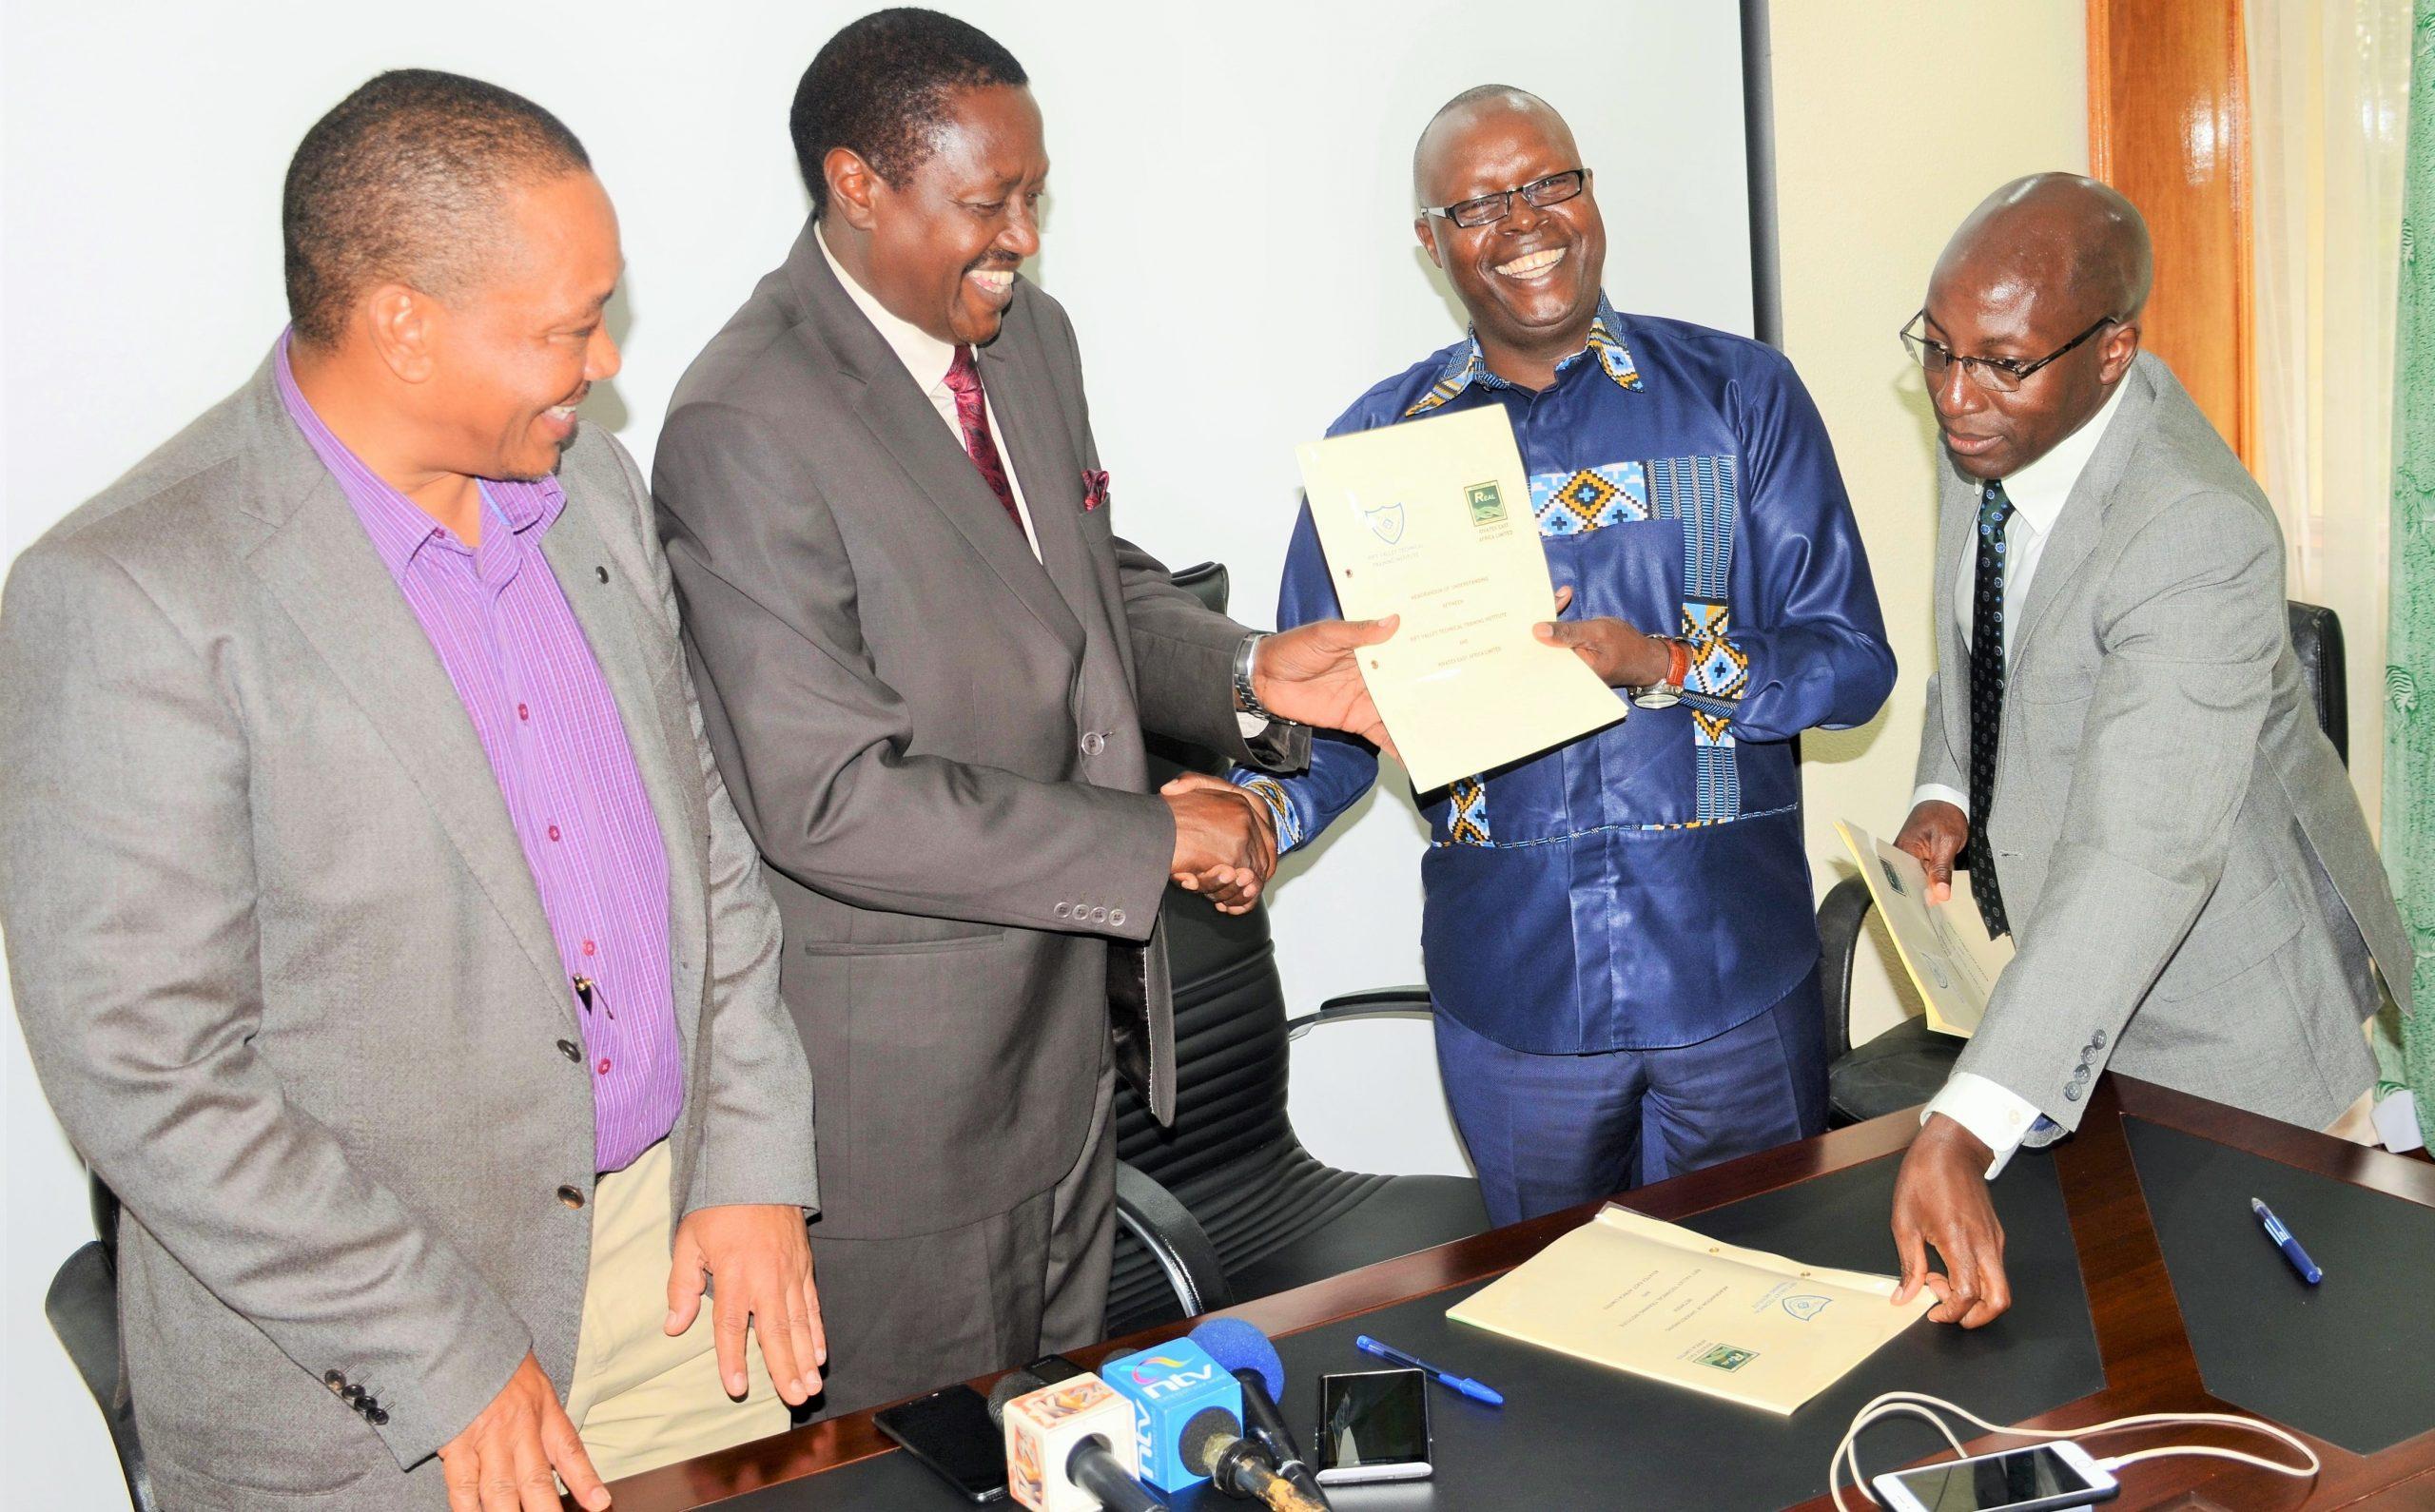 Rivatex East Africa signed an MOU with Rift Valley Technical Training Institute (RVTTI)